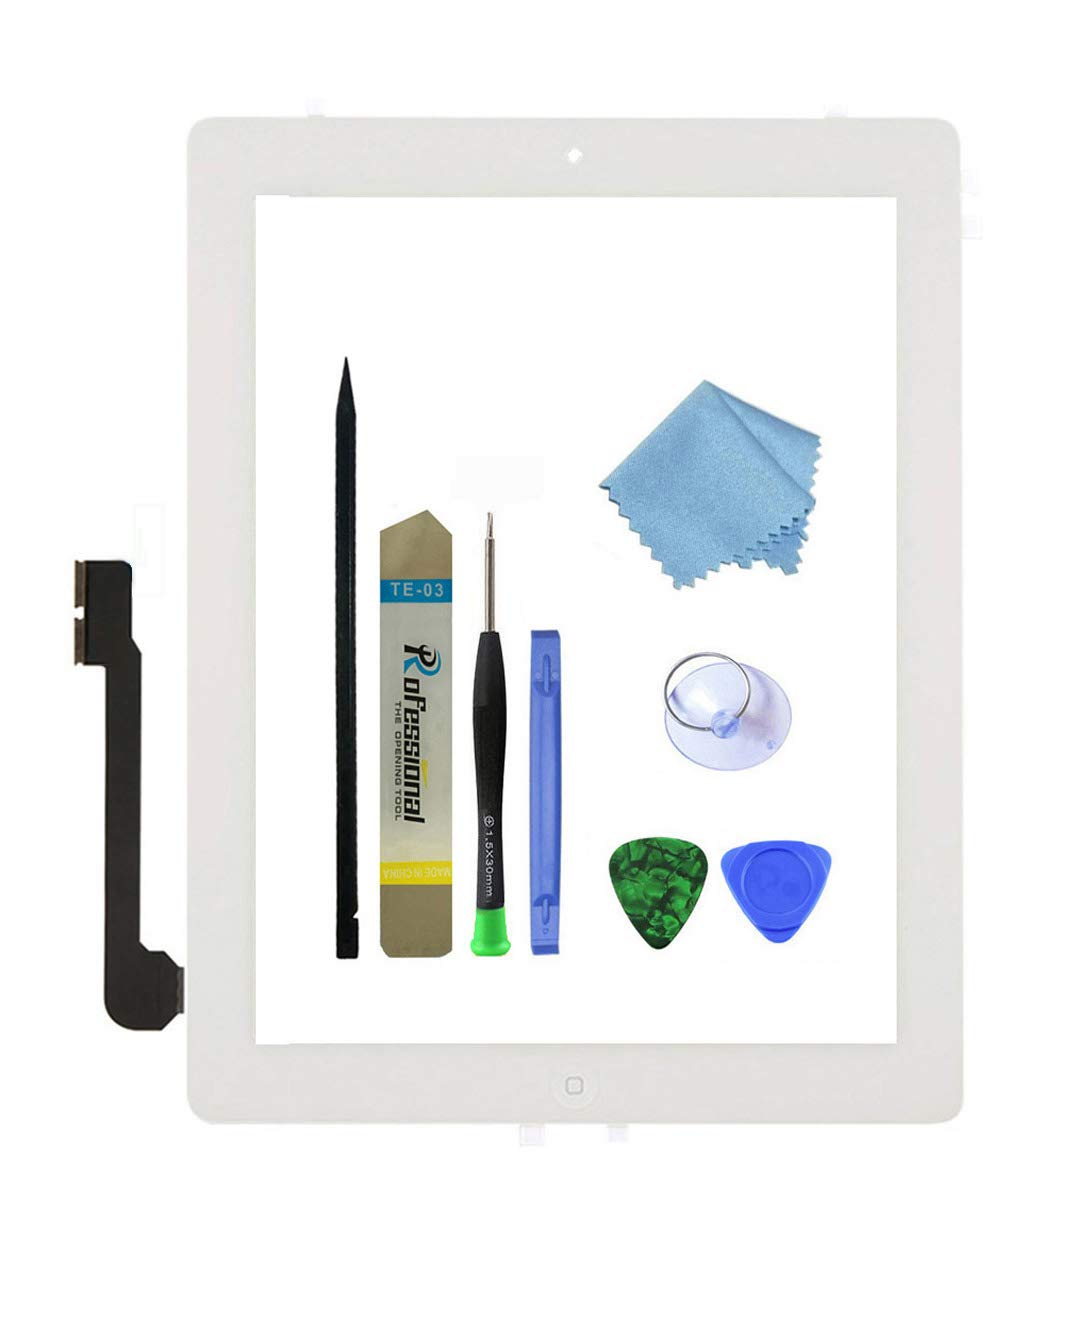 Zentop Touch Screen Digitizer replacement Assembly for White iPad 3 Model A1403, A1416, A1430 whit Home Button, Camera Holder ,Preinstalled Adhesive,Frame Bezel, tool Kit. by Zentop